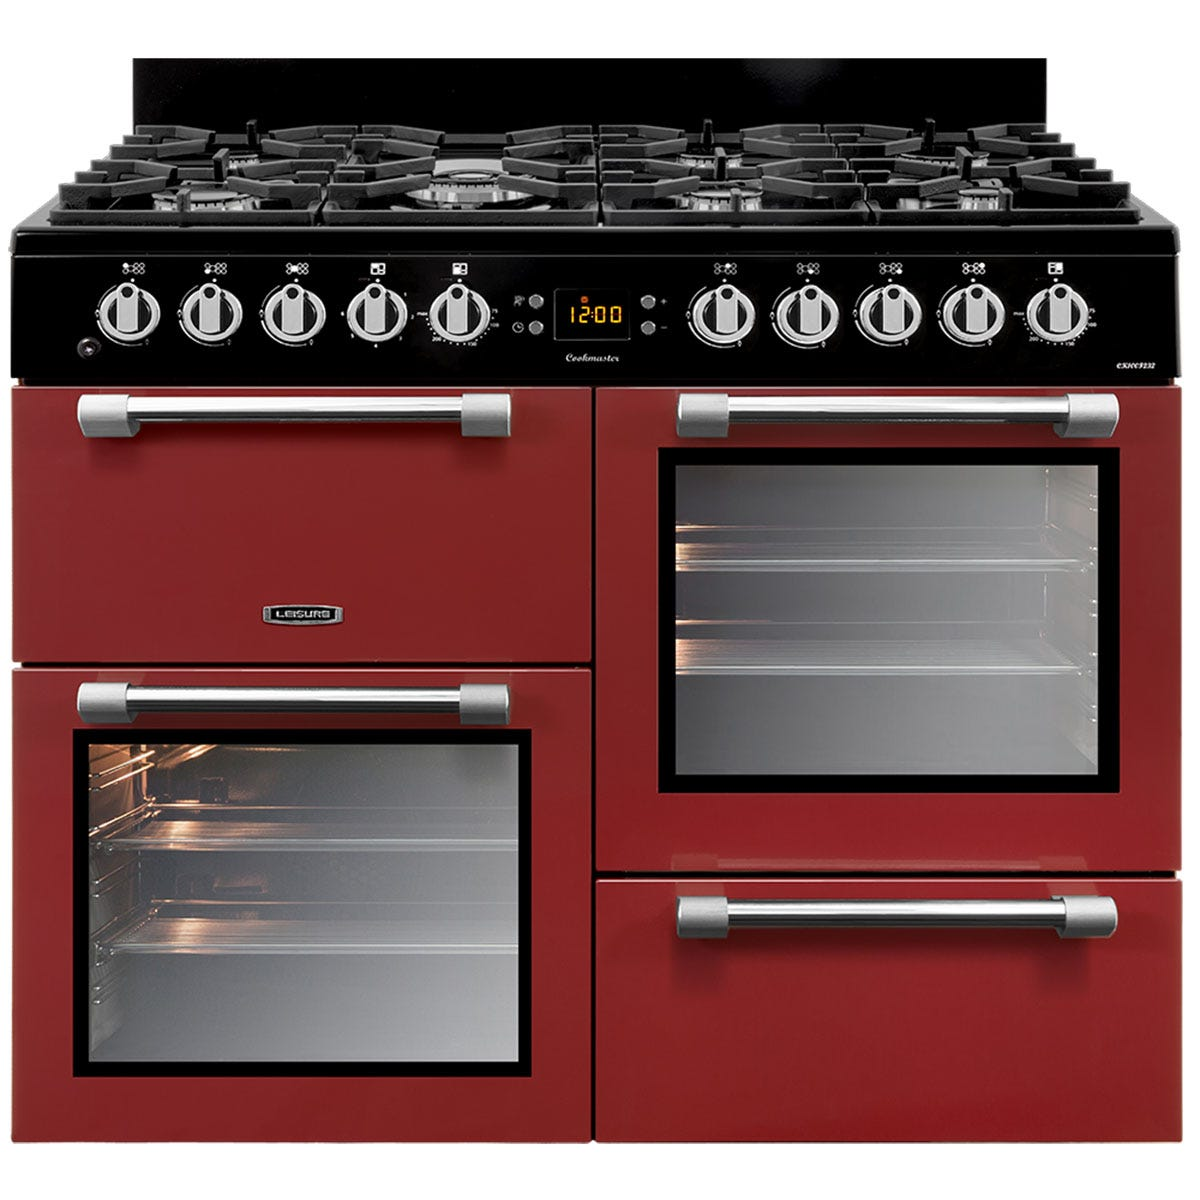 Leisure CK100F232R 100cm Cookmaster Dual Fuel Range Cooker - Red